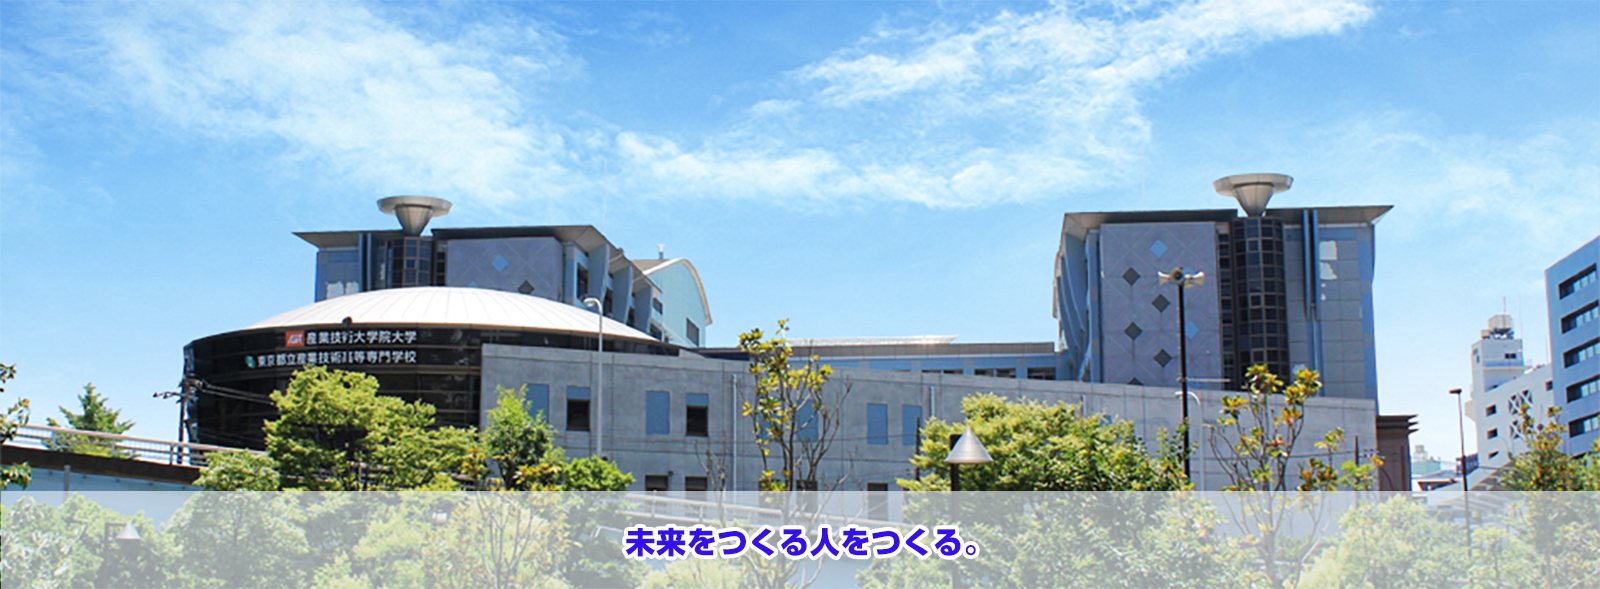 School building background photograph 04 which forms person making the future